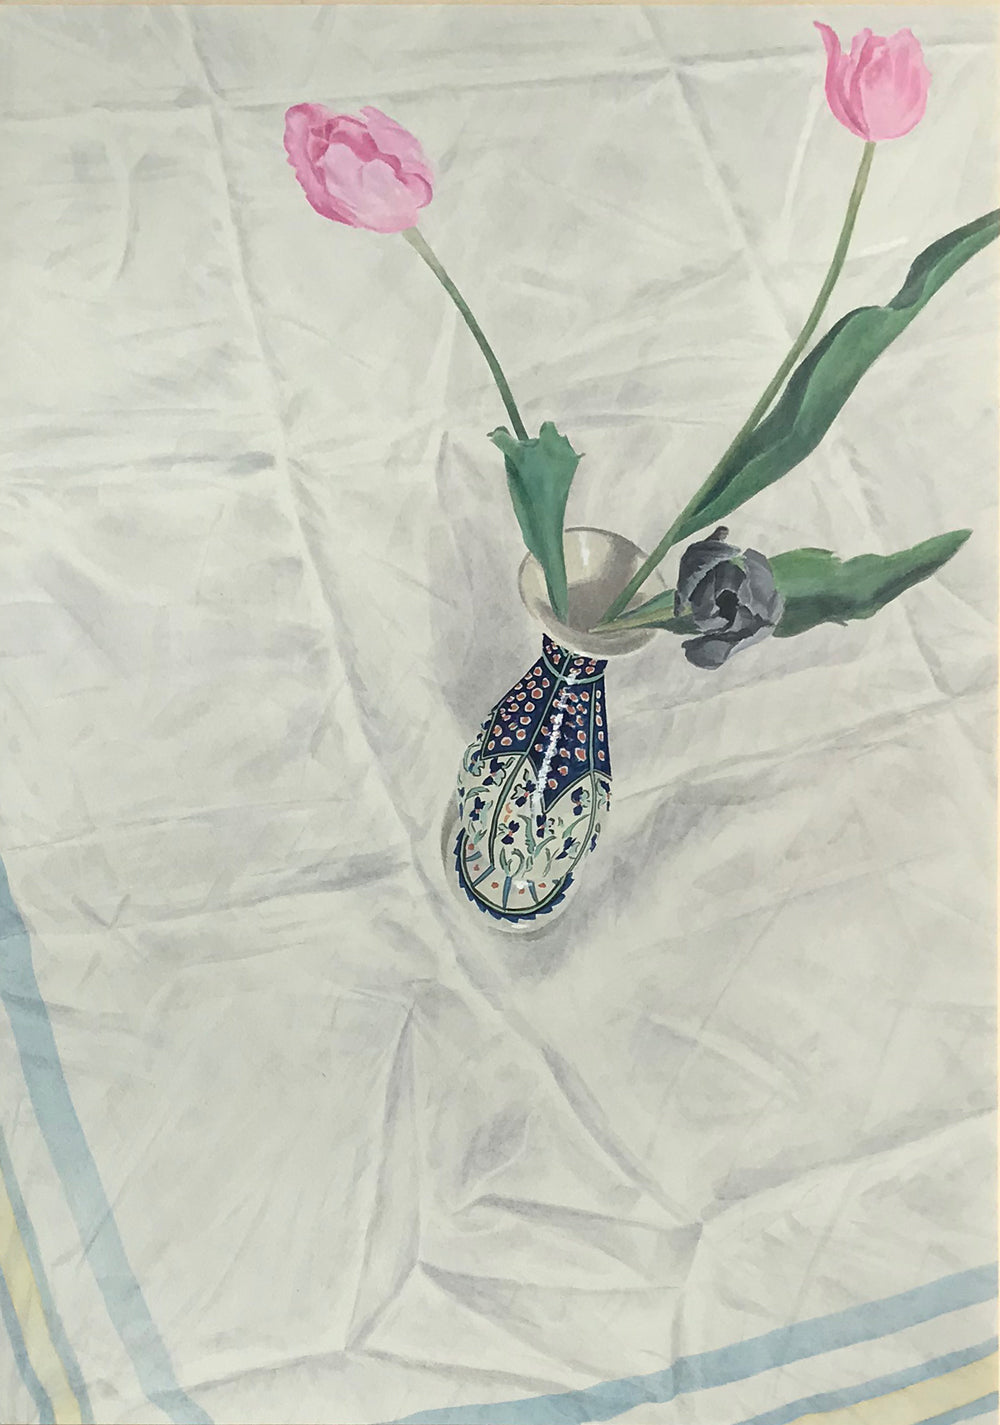 Tablecloth and Tulips by Andrew Jackson